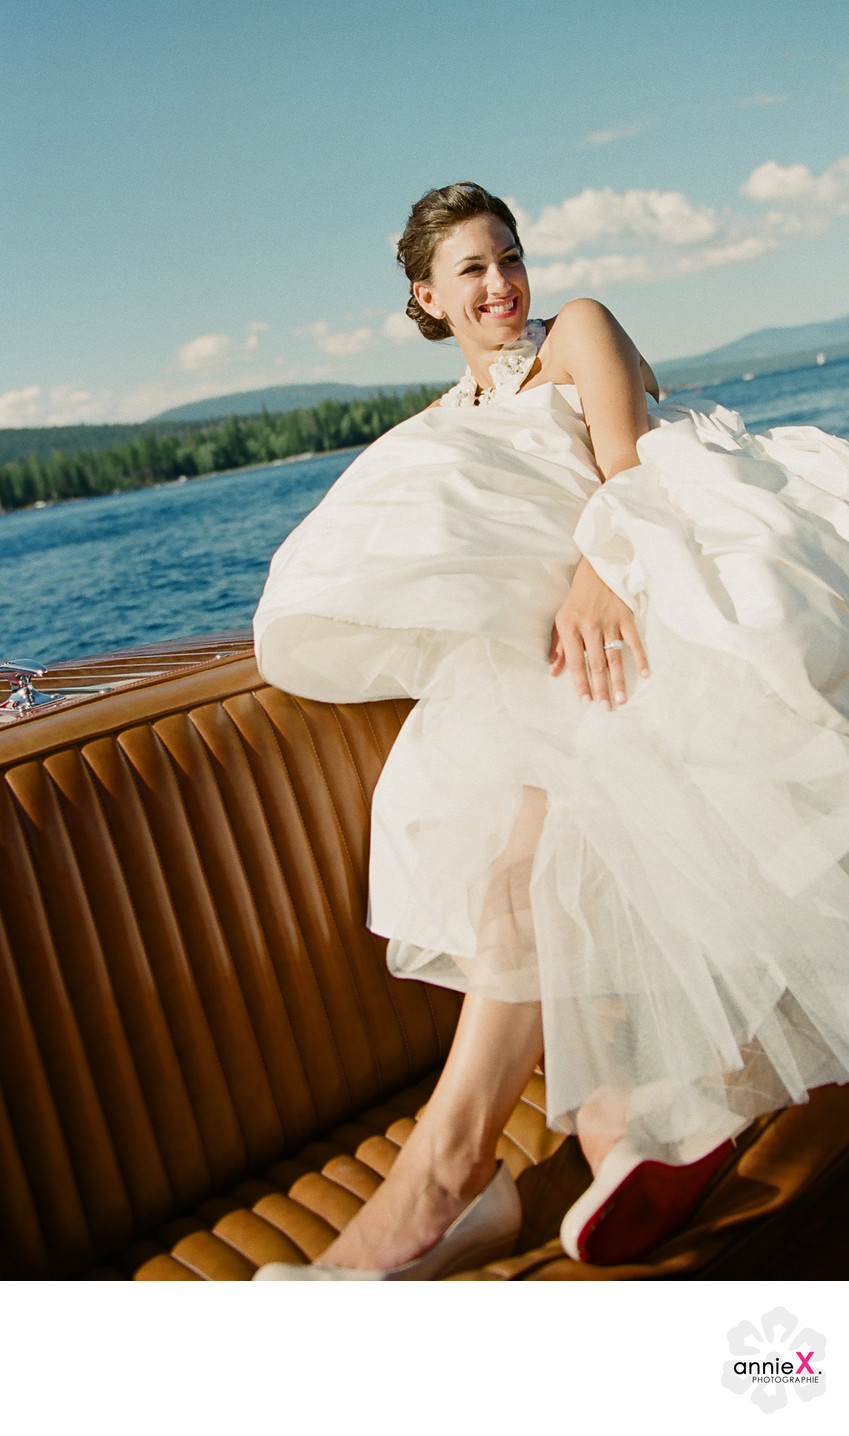 Vintage Boat and Bride